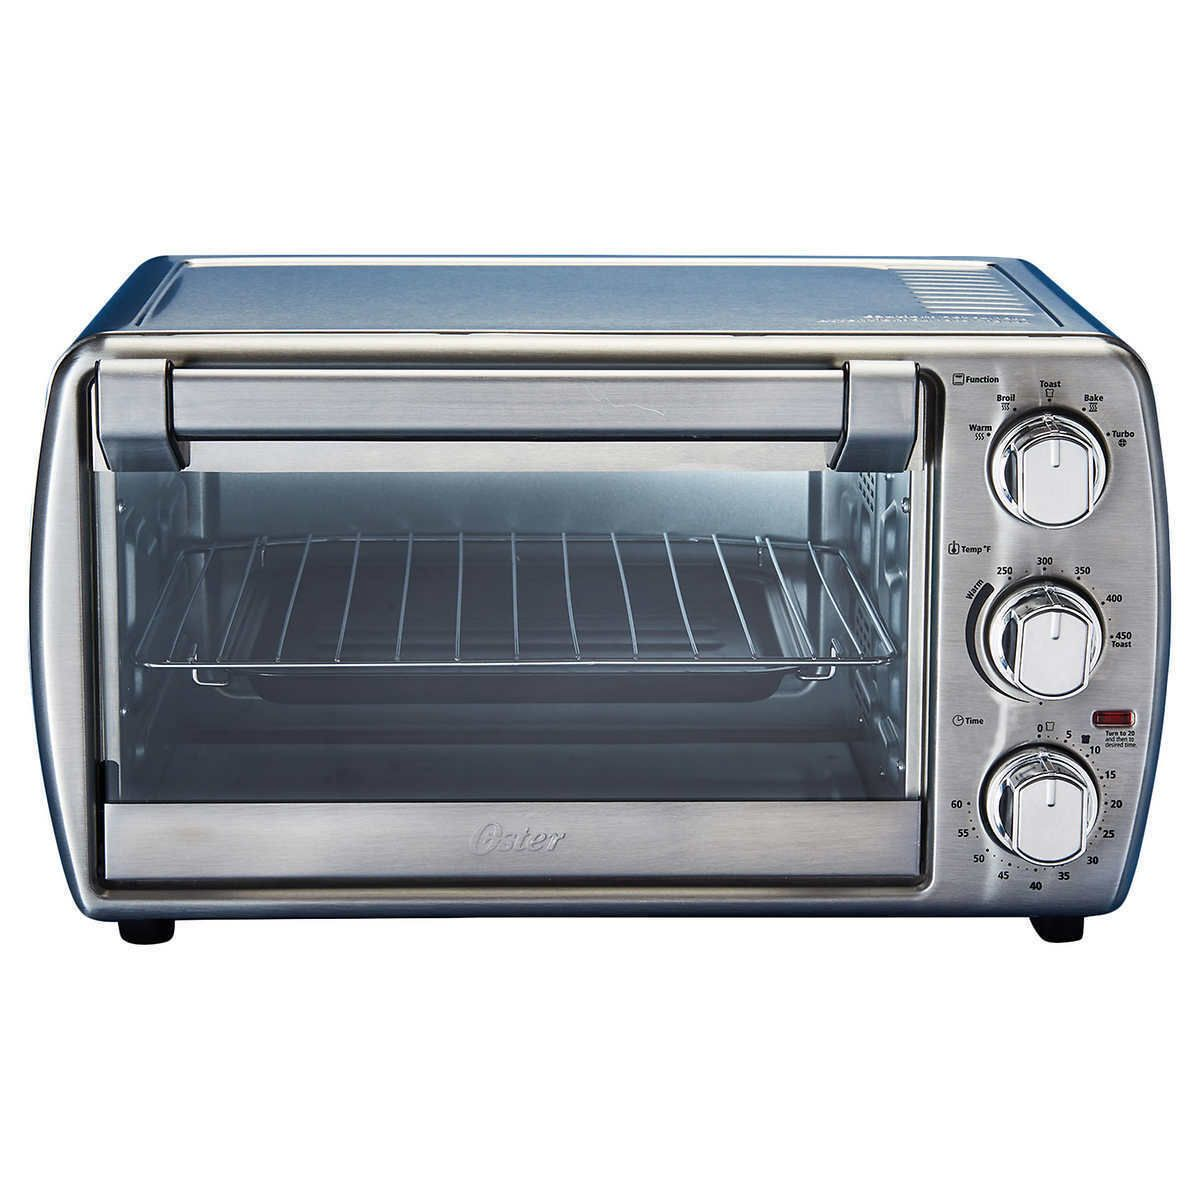 New Oster 6 Slice Turbo Convection Countertop Oven Brushed